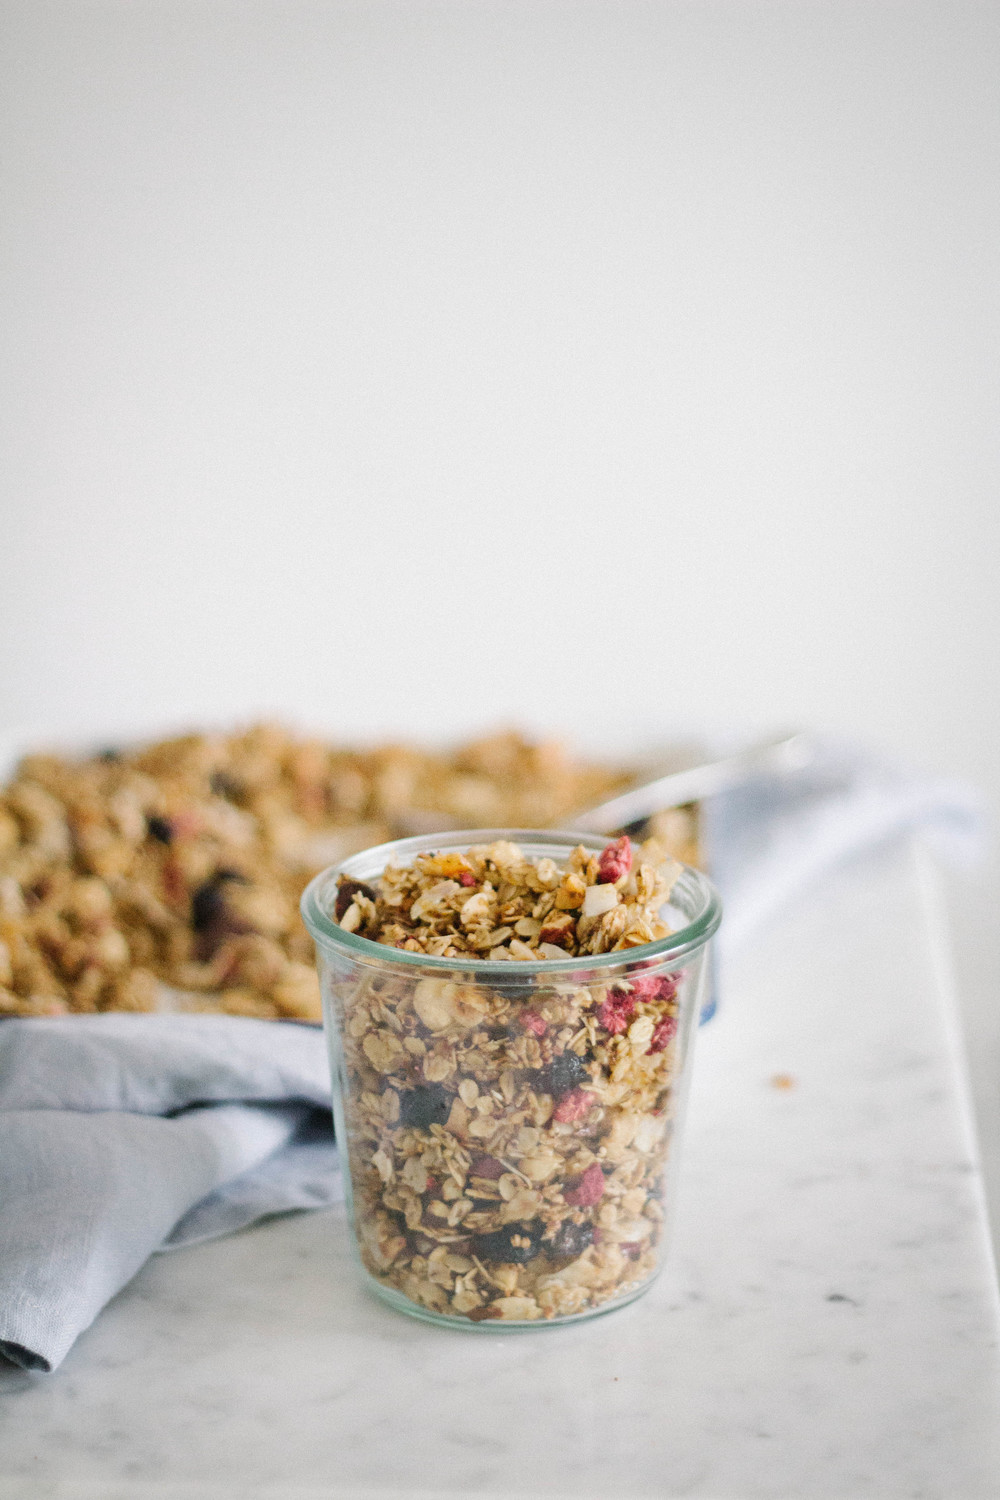 Pear & chocolate winter granola